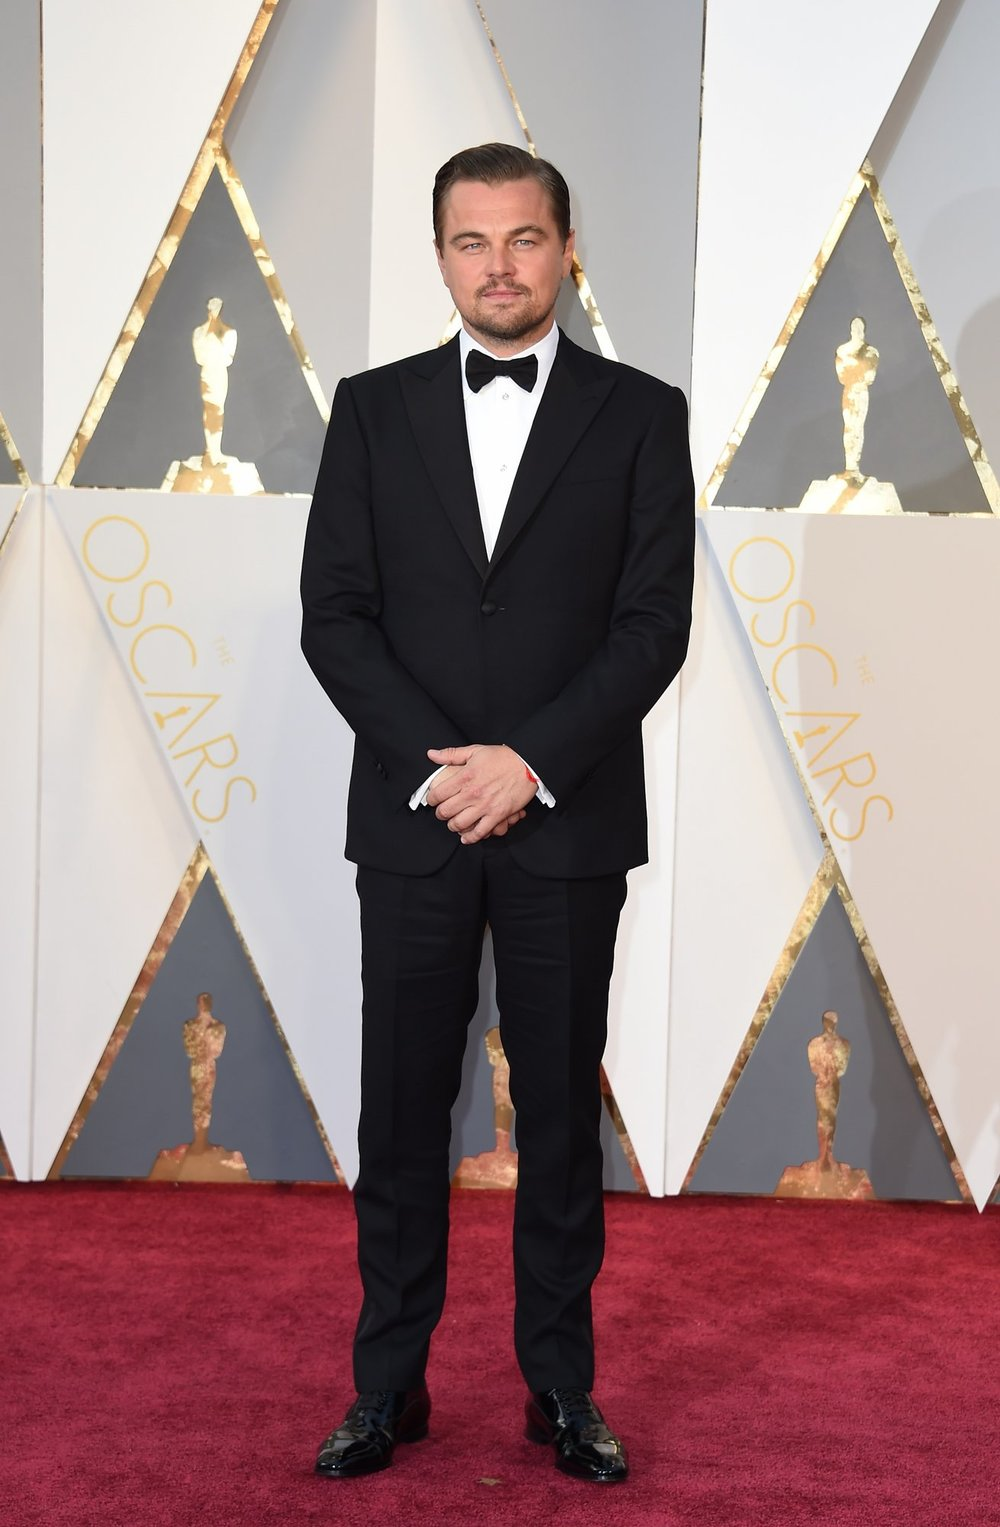 Man of the night, Leonardo DiCaprio in Giorgio Armani and Christian Louboutin shoes. We'll never let go!